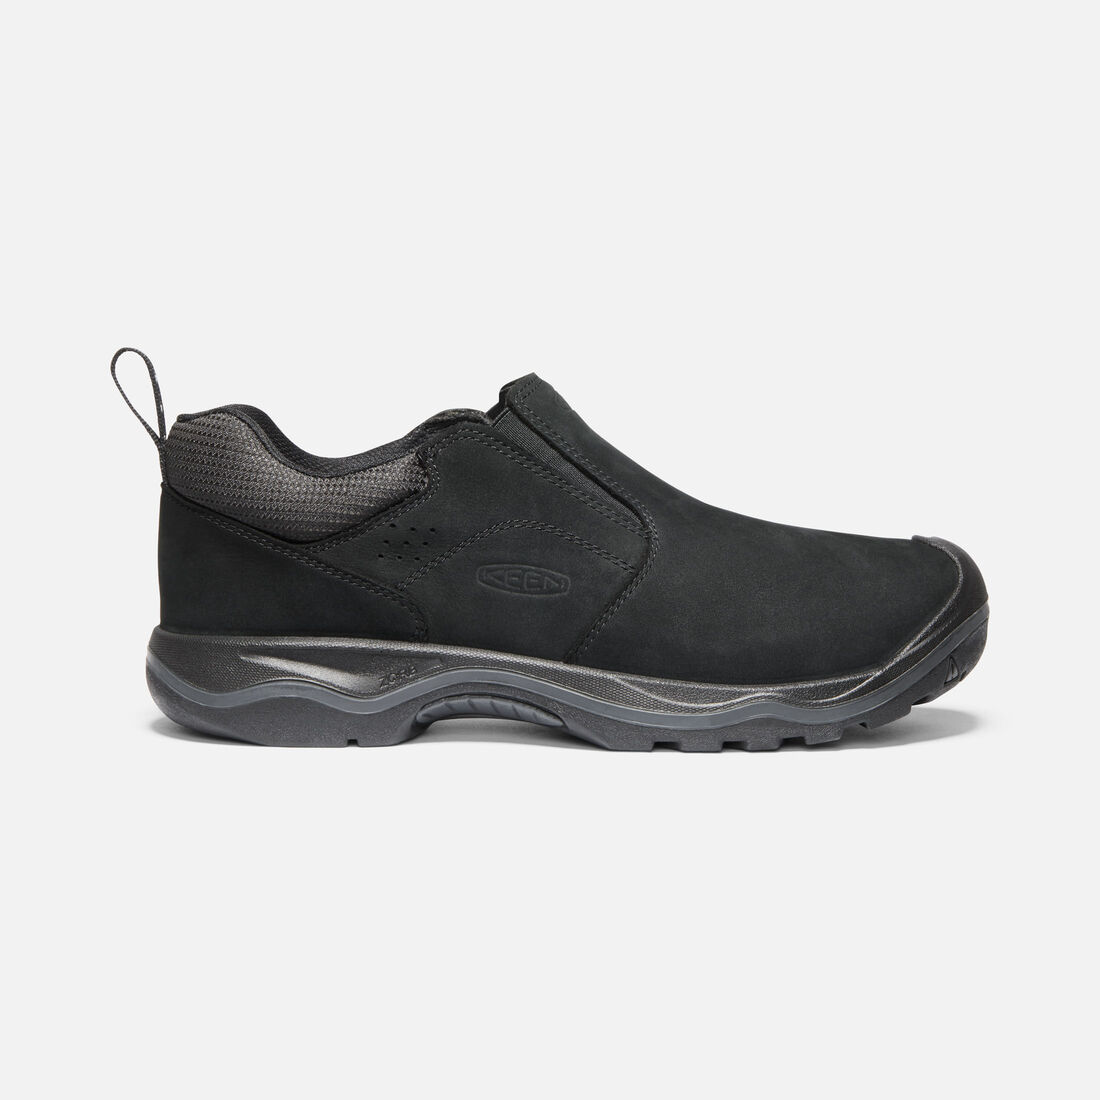 fddb2c8ee83 Men s RIALTO SLIP-ON - The walking shoe you won t want to take off ...